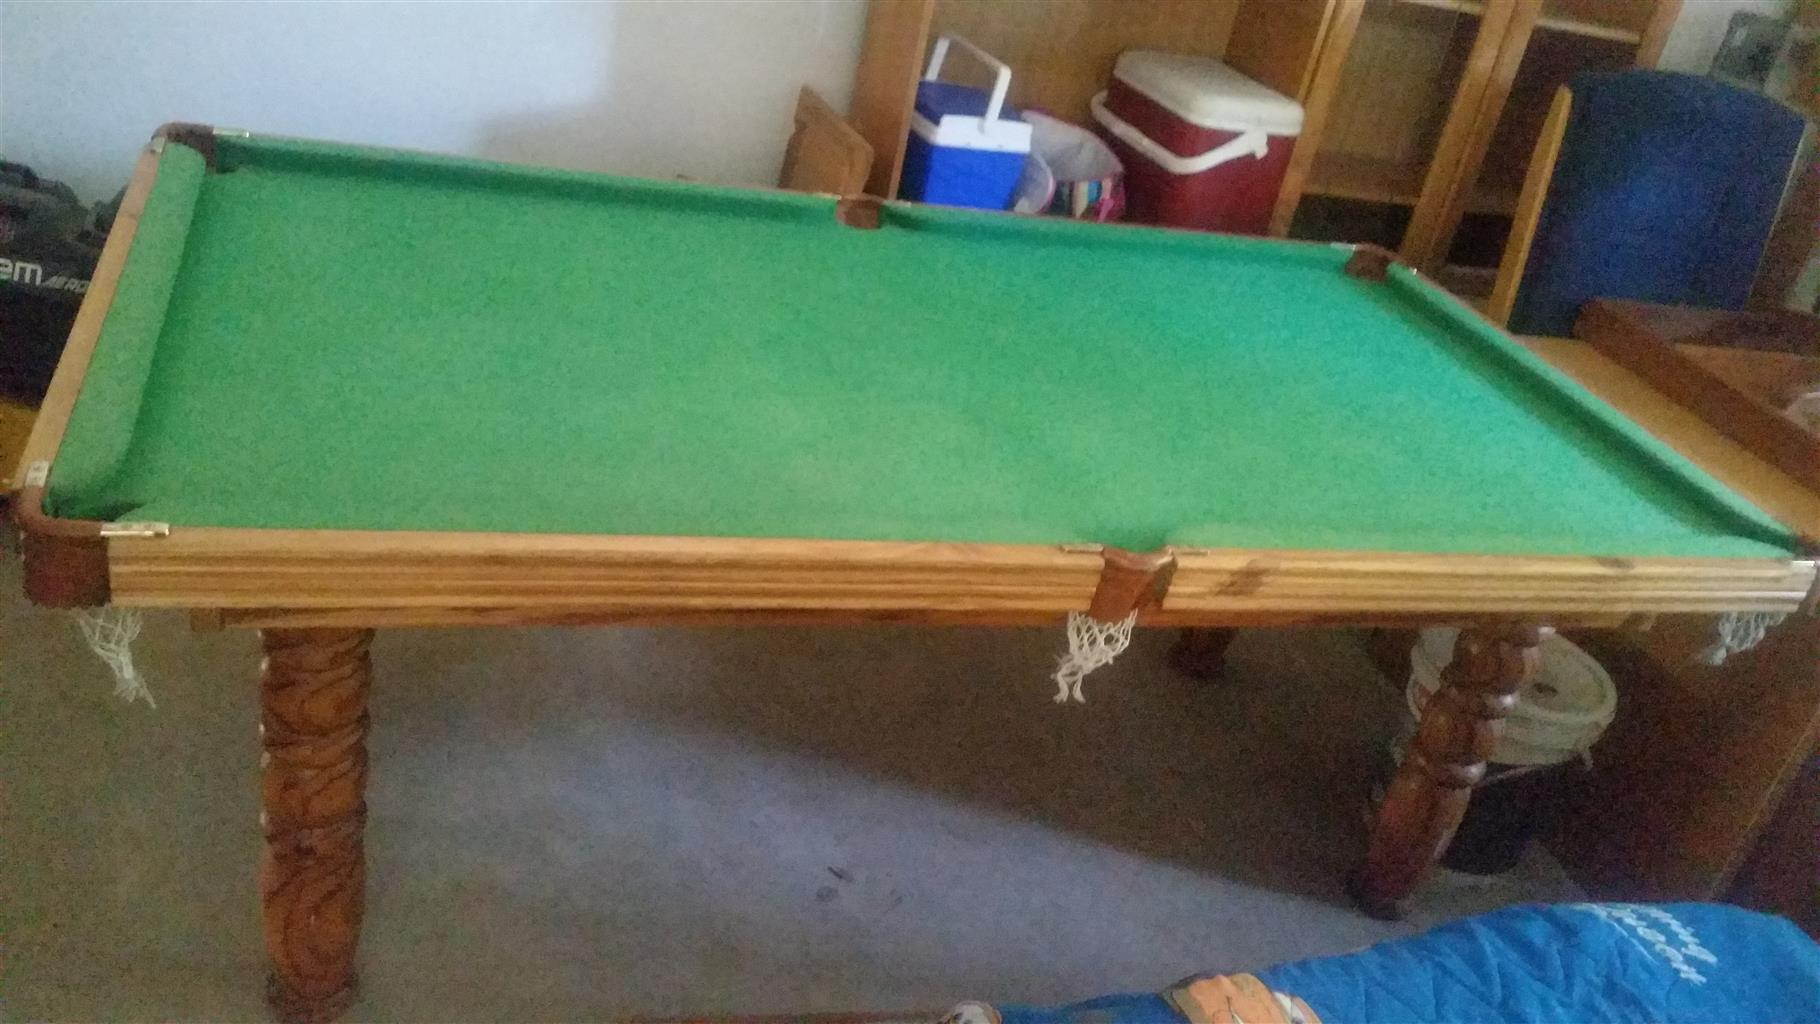 Pool/Snooker Table  3/4 size.Complete set snooker and pool balls . 3 Cues,triangle to set up balls .